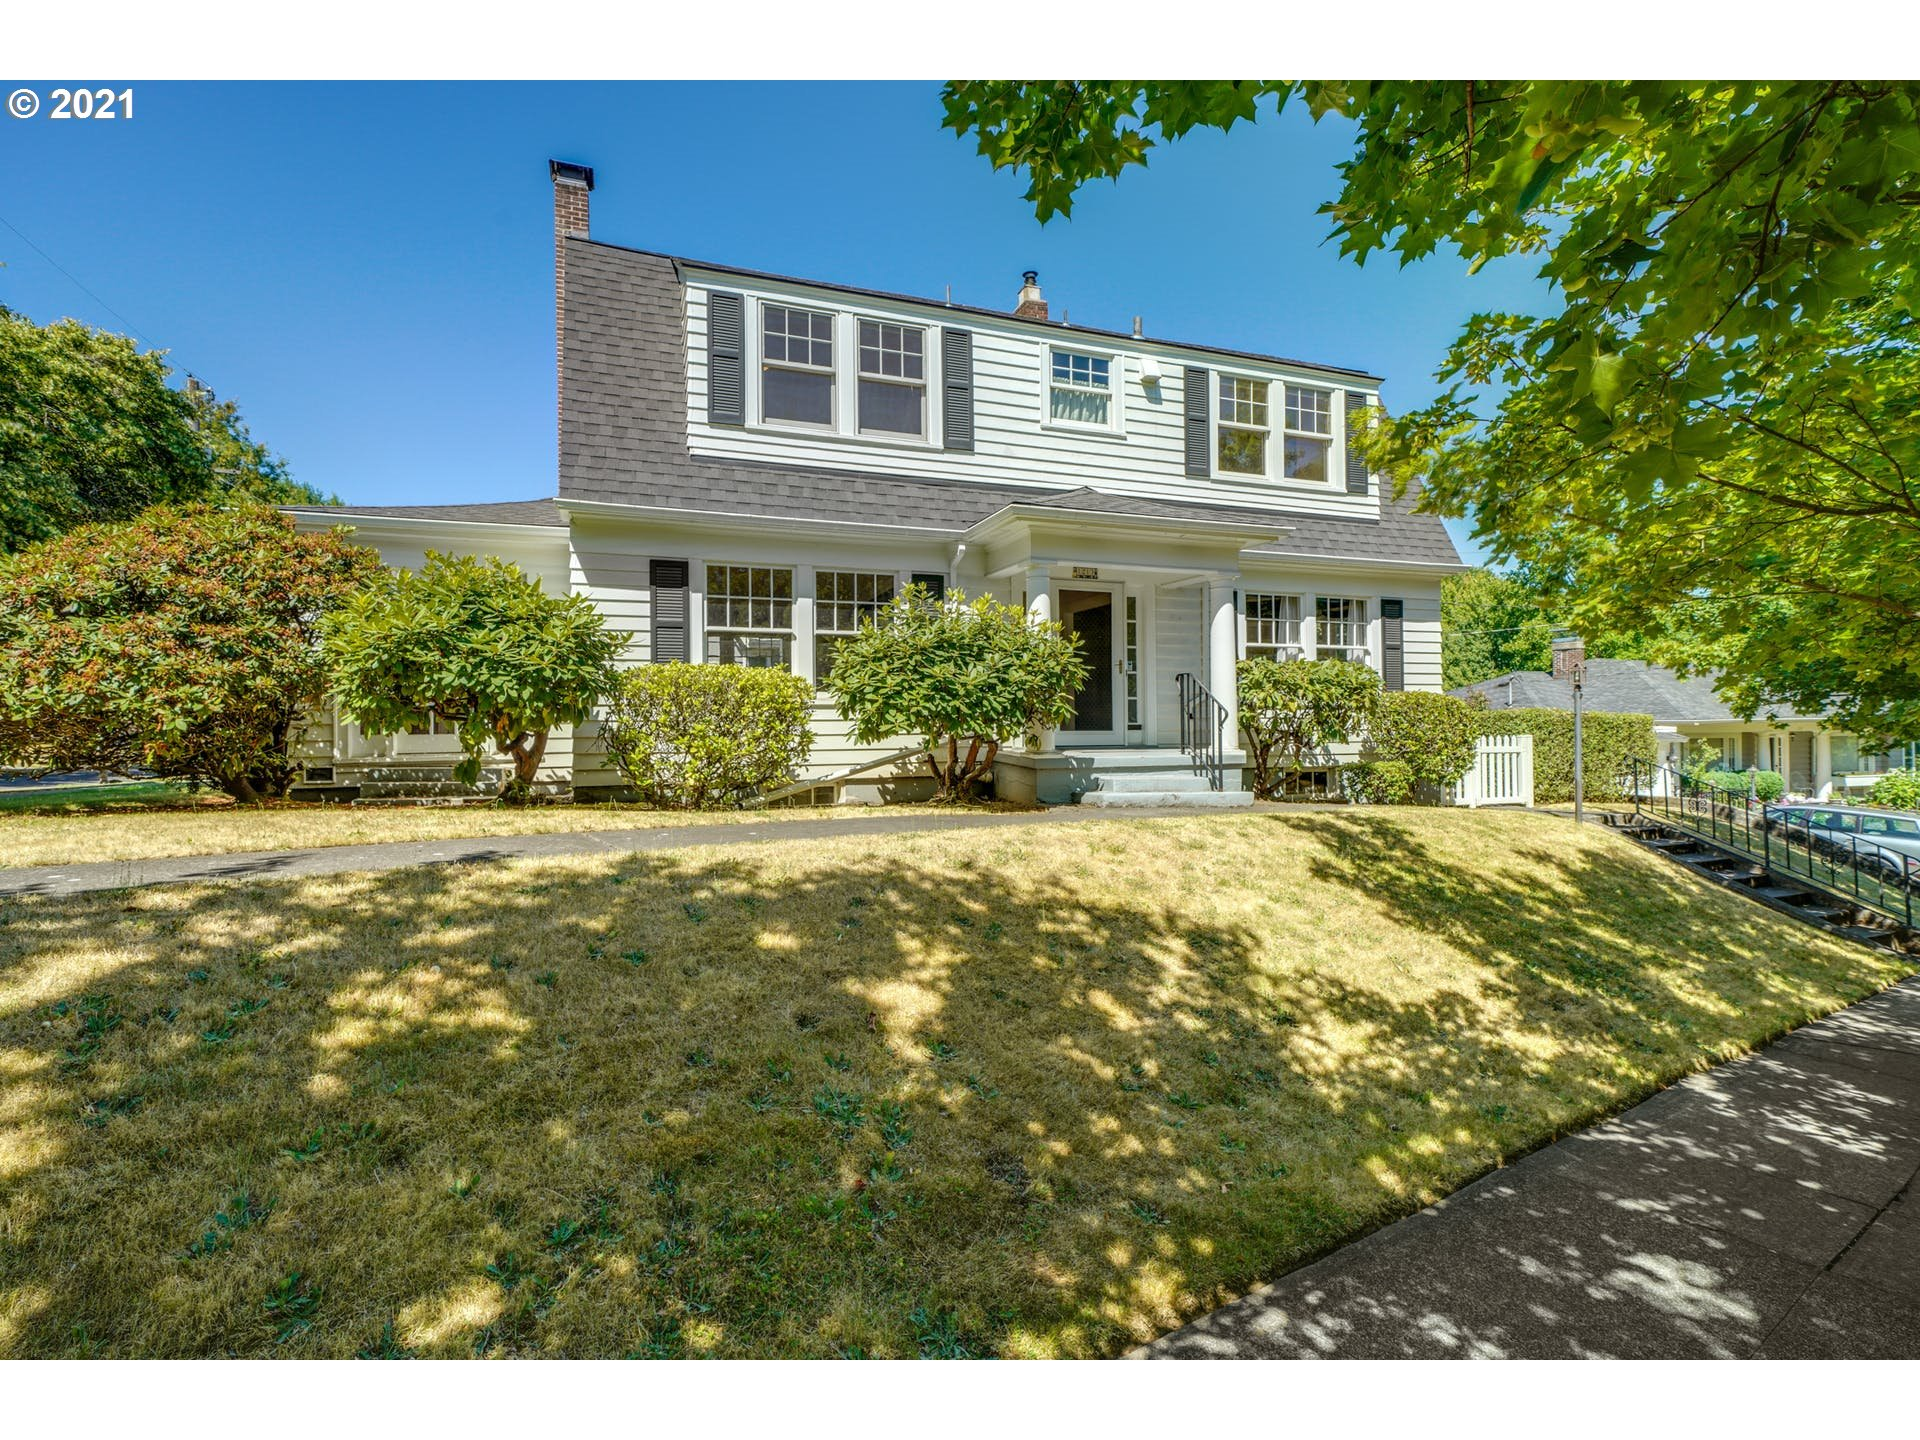 Gracious Laurelhurst Dutch Colonial on quiet corner lot. Grand formal living and dining rooms. Sunroom off living room perfect for den or sitting room. Architectural details include traditional entry hall and staircase, glass doorknobs, picture rail, and more. Lovingly cared for by the same family for over 60 years. Make this wonderful home yours by updating and decorating to your tastes. [Home Energy Score = 2. HES Report at https://rpt.greenbuildingregistry.com/hes/OR10192575]